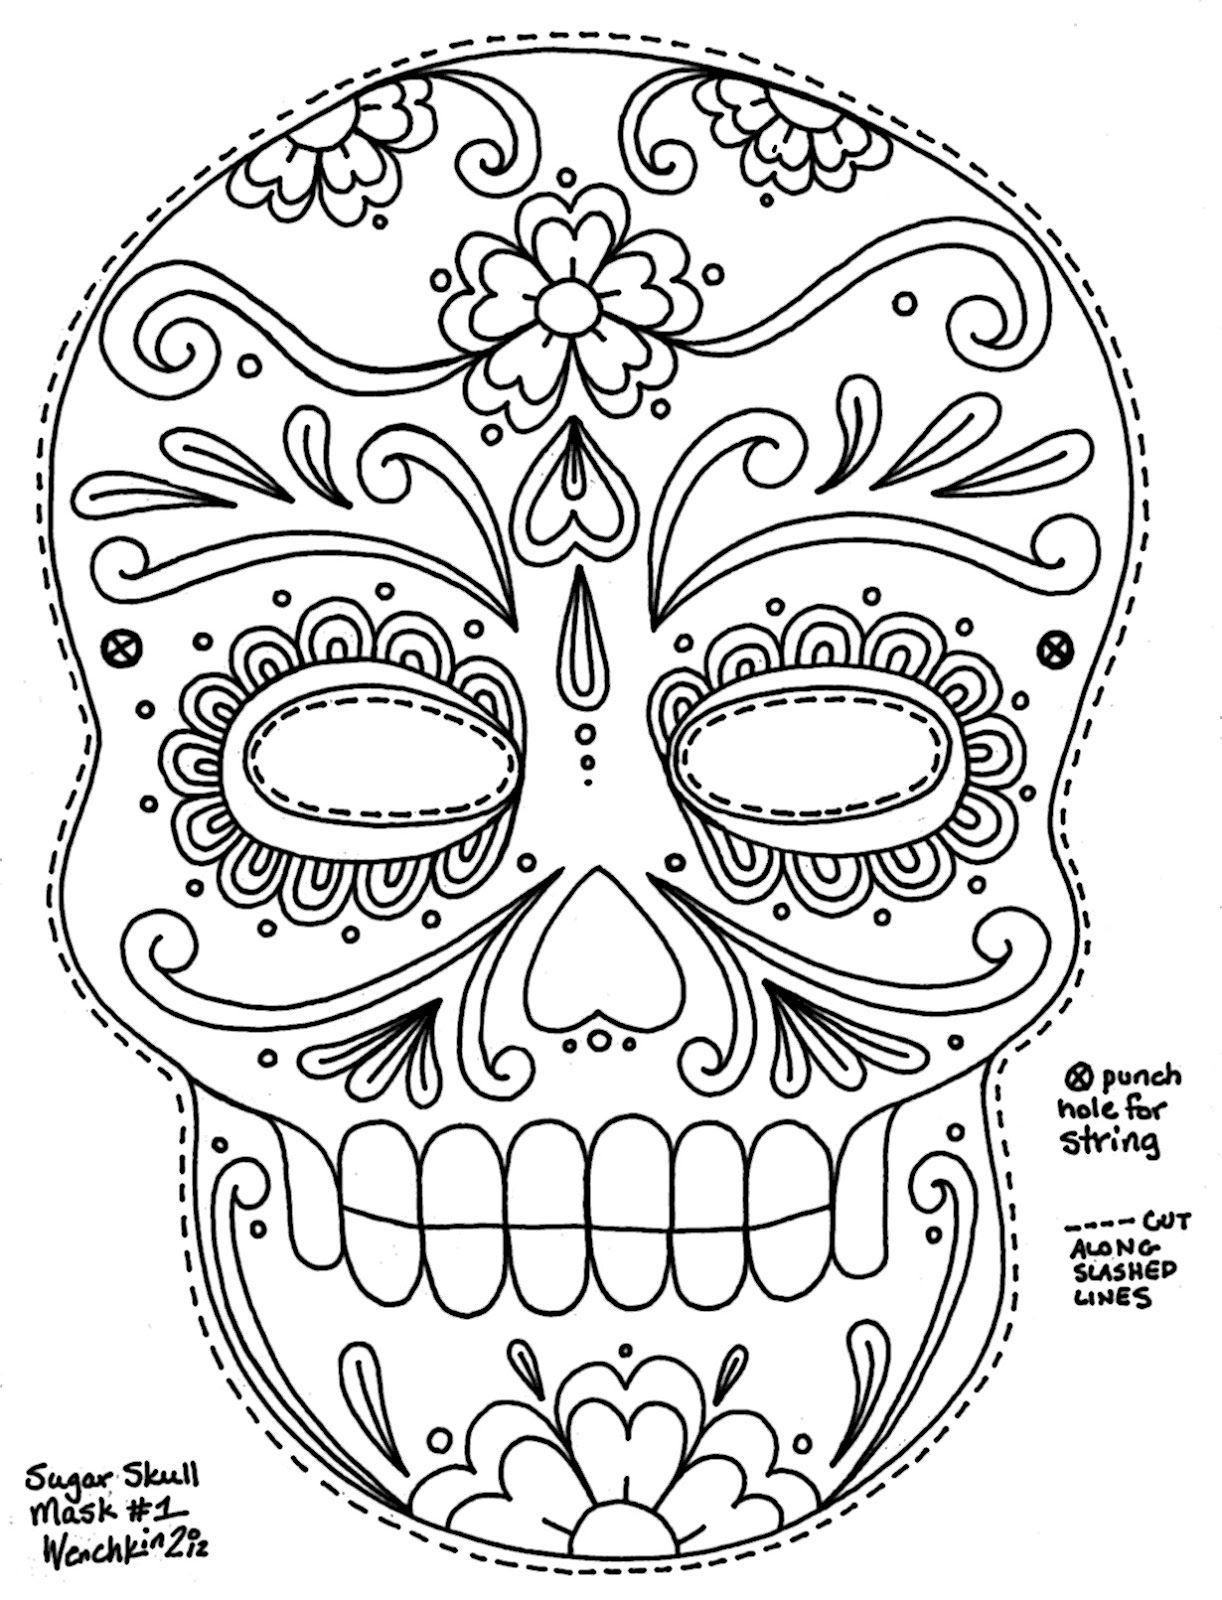 Sugar Skulls Coloring Pages Free  Gallery 8m - Save it to your computer